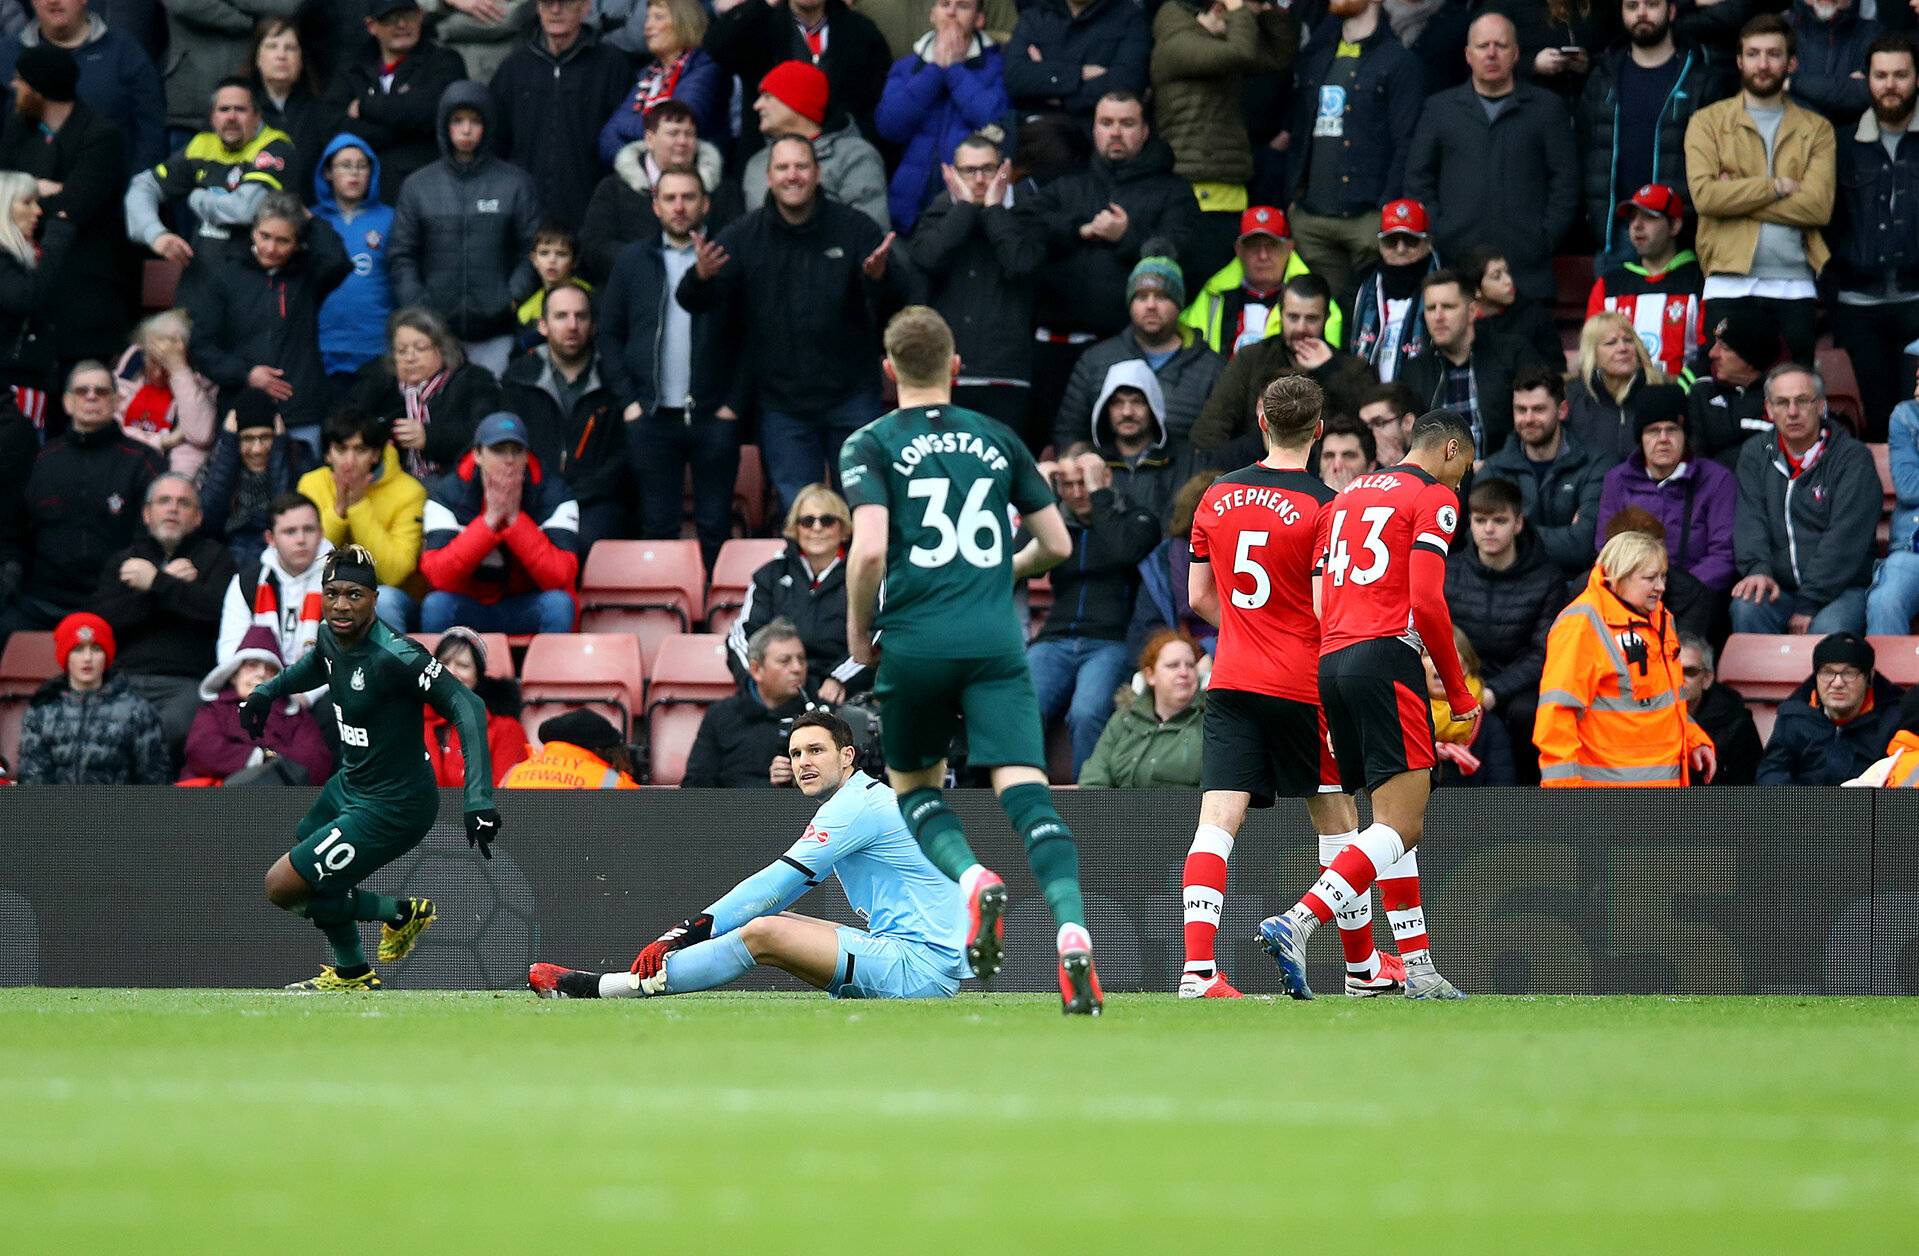 SOUTHAMPTON, ENGLAND - MARCH 07: Alex McCarthy of Southampton dejected after Allan Saint-Maximin of Newcastle United scores during the Premier League match between Southampton FC and Newcastle United at St Mary's Stadium on March 07, 2020 in Southampton, United Kingdom. (Photo by Matt Watson/Southampton FC via Getty Images)